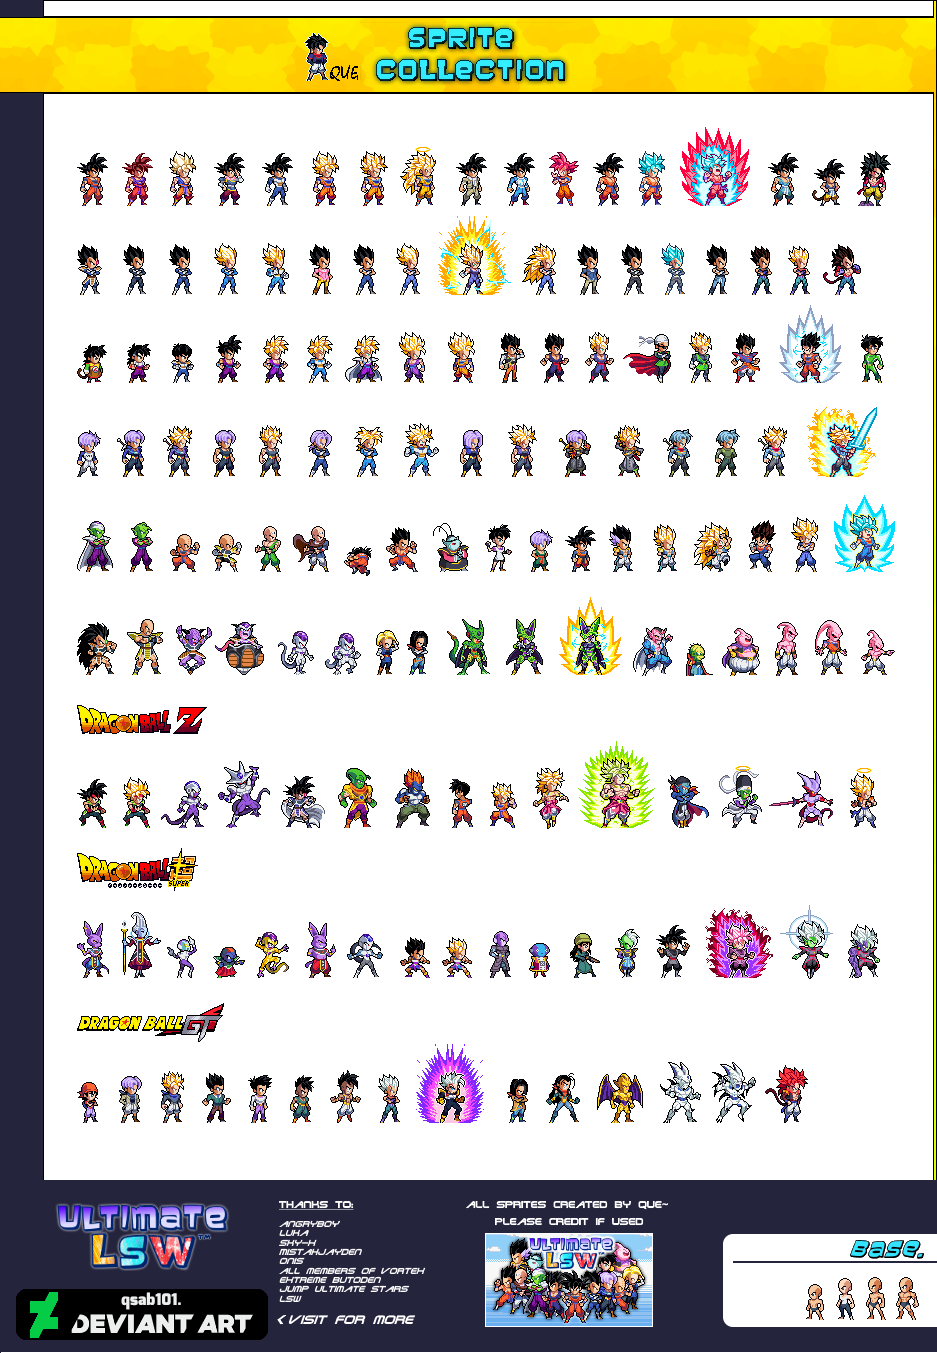 Ultimate Lsw Sprite Collection By Qsab101 Art In 2019 Dragon